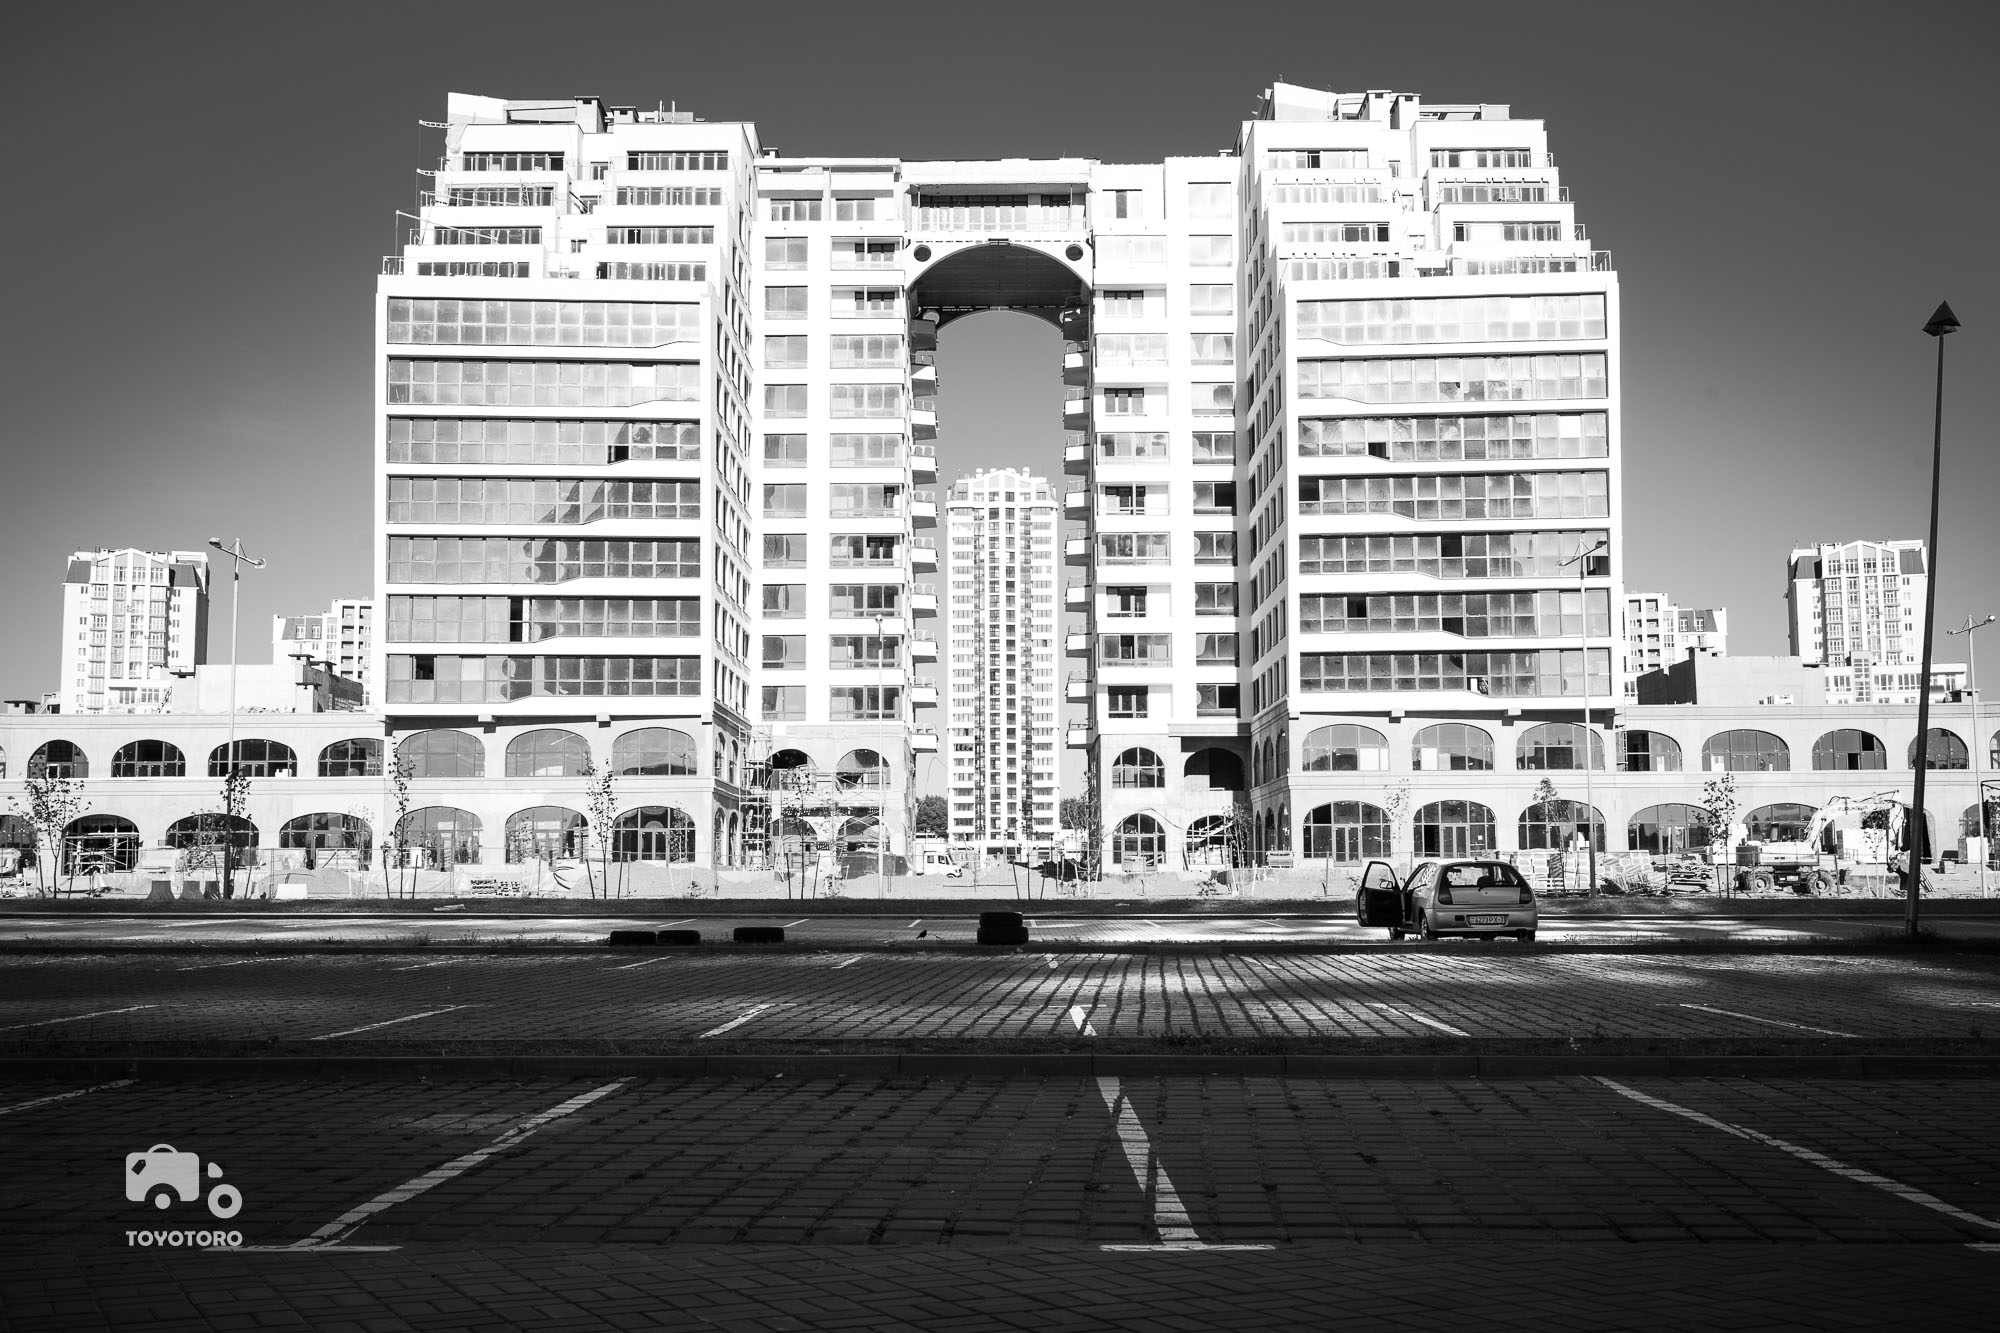 Brutalism opposite Minsk National Library